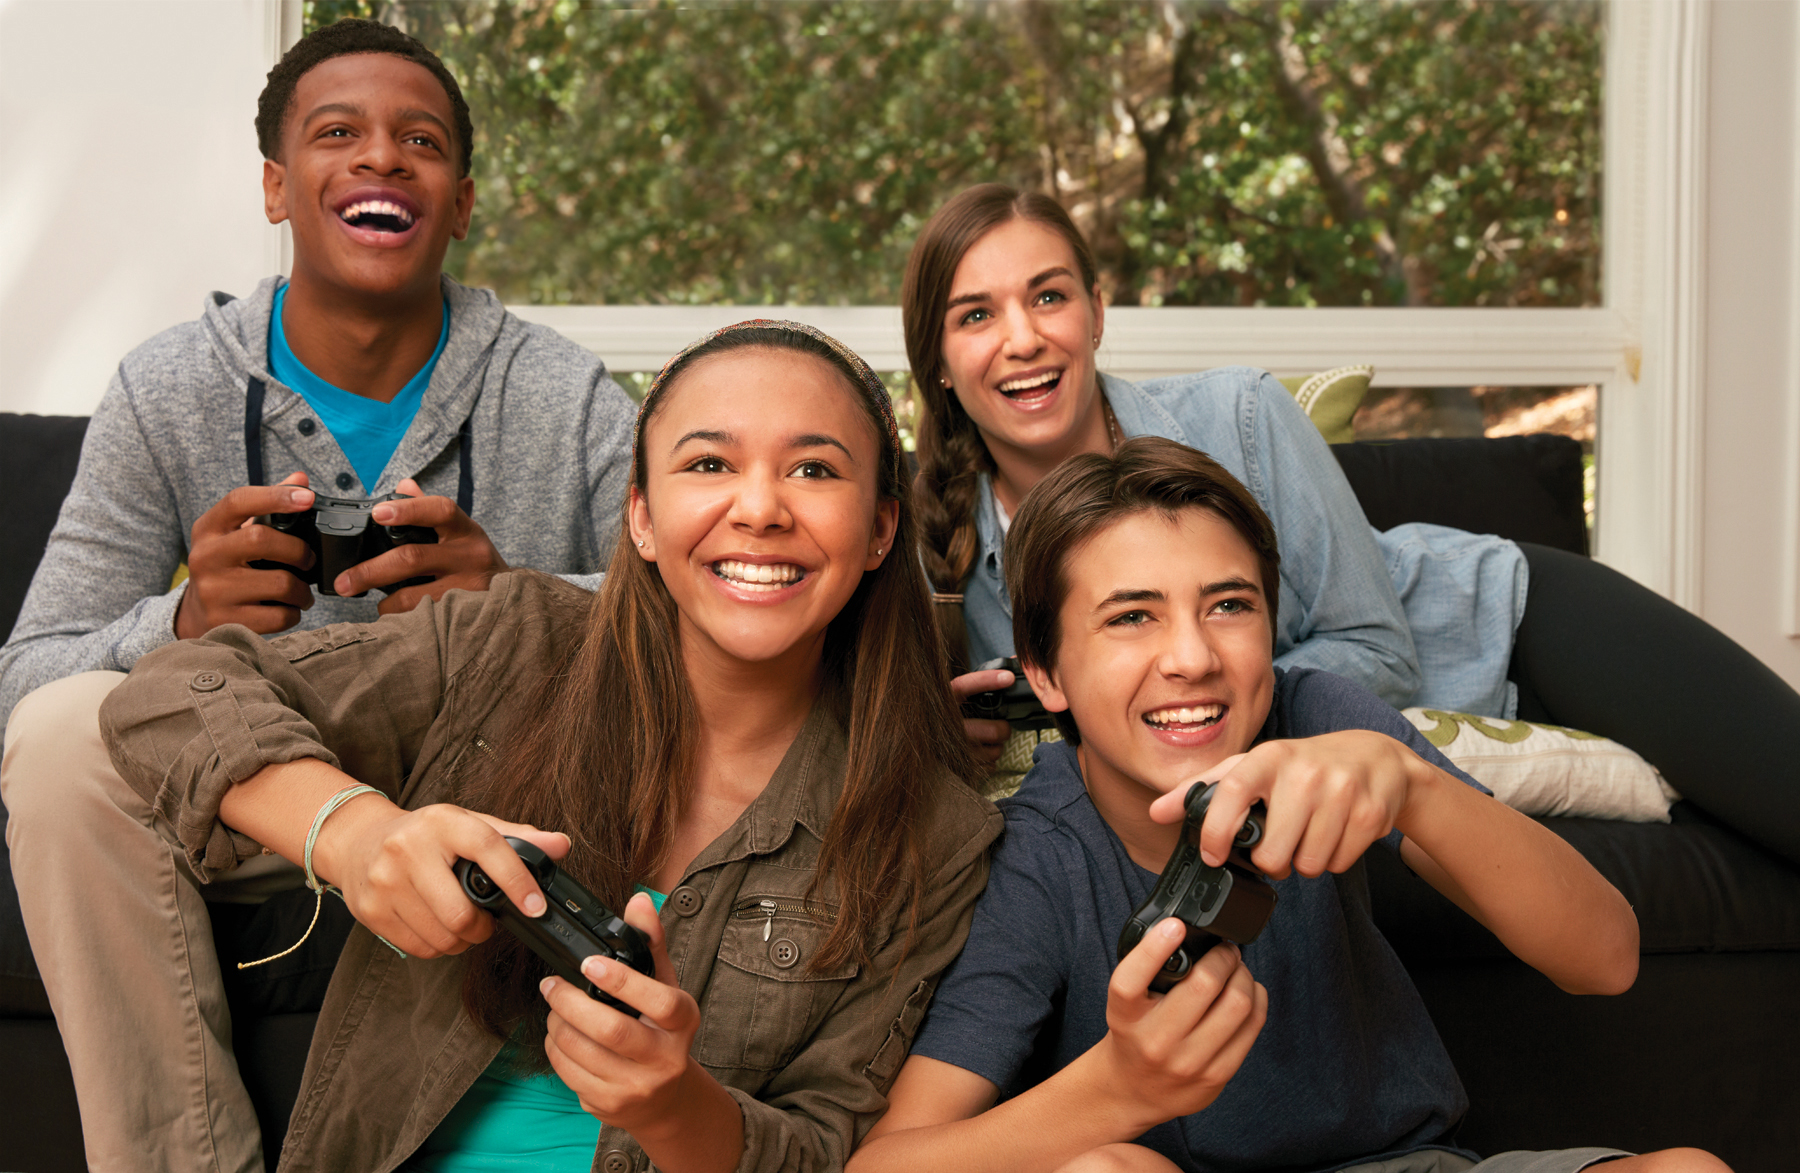 4teens_gaming2_LR.jpg_9_14_2016_1_57_58_PM